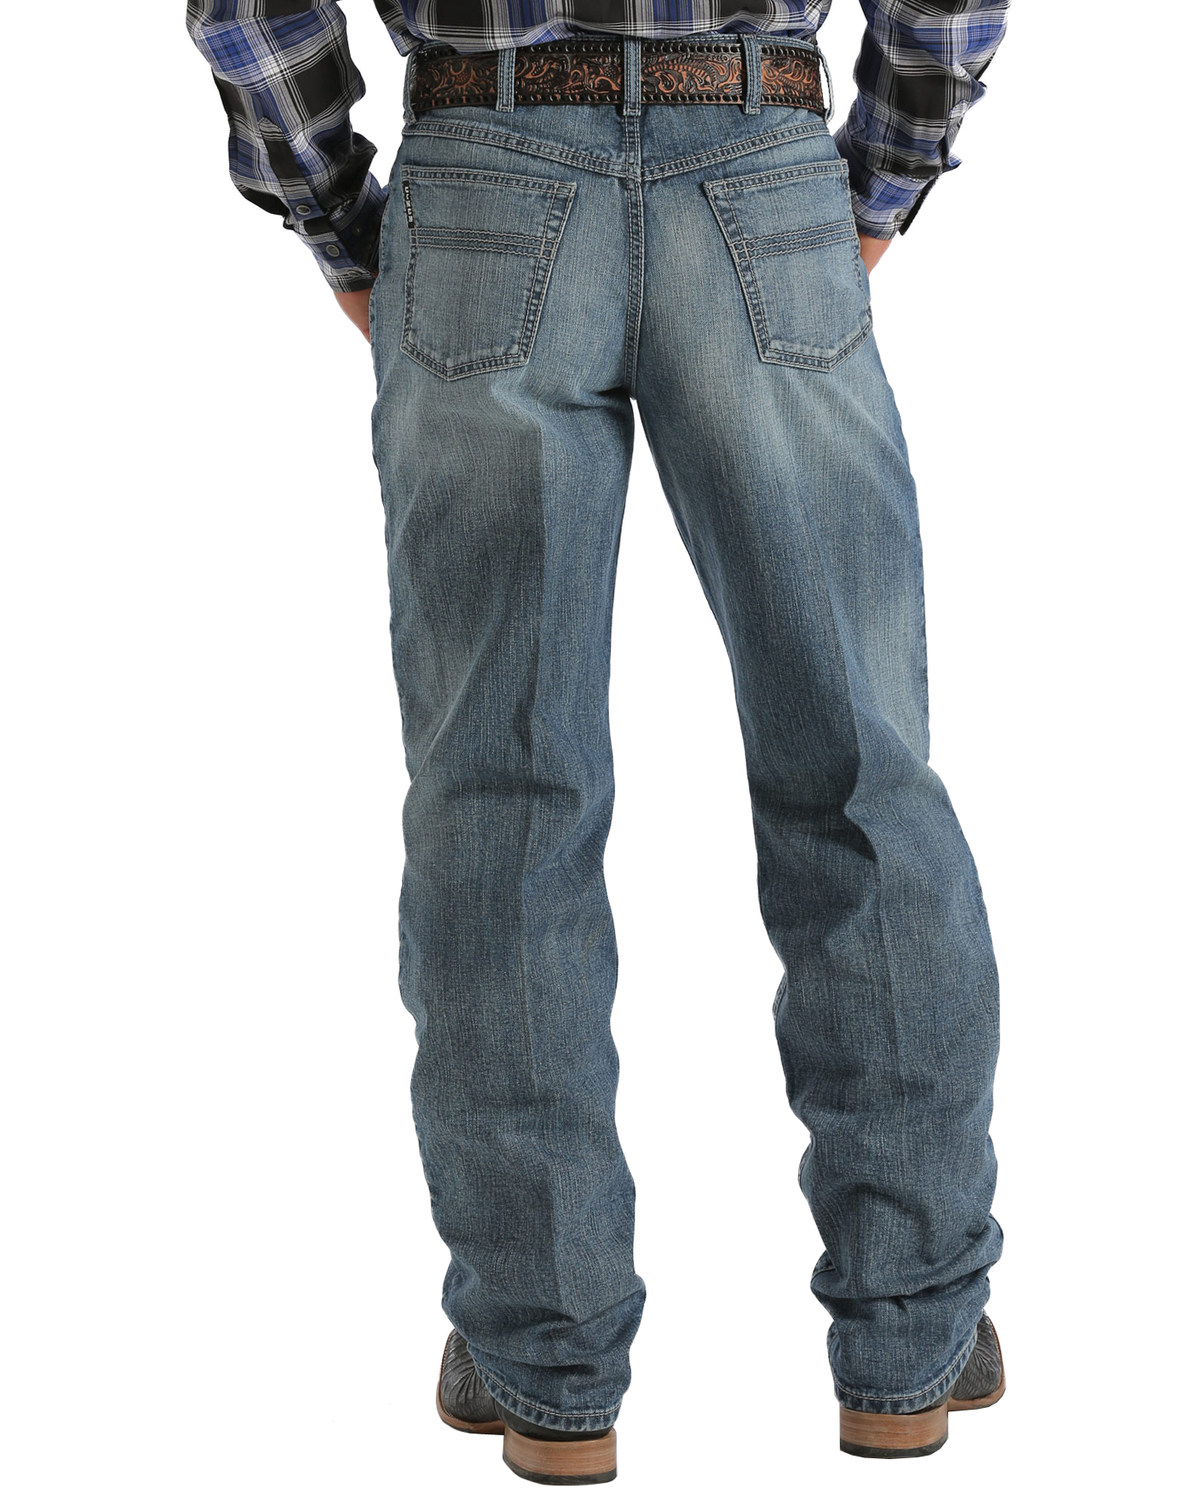 396db814410 Cinch Men's Black Label 2.0 Stonewash Jeans